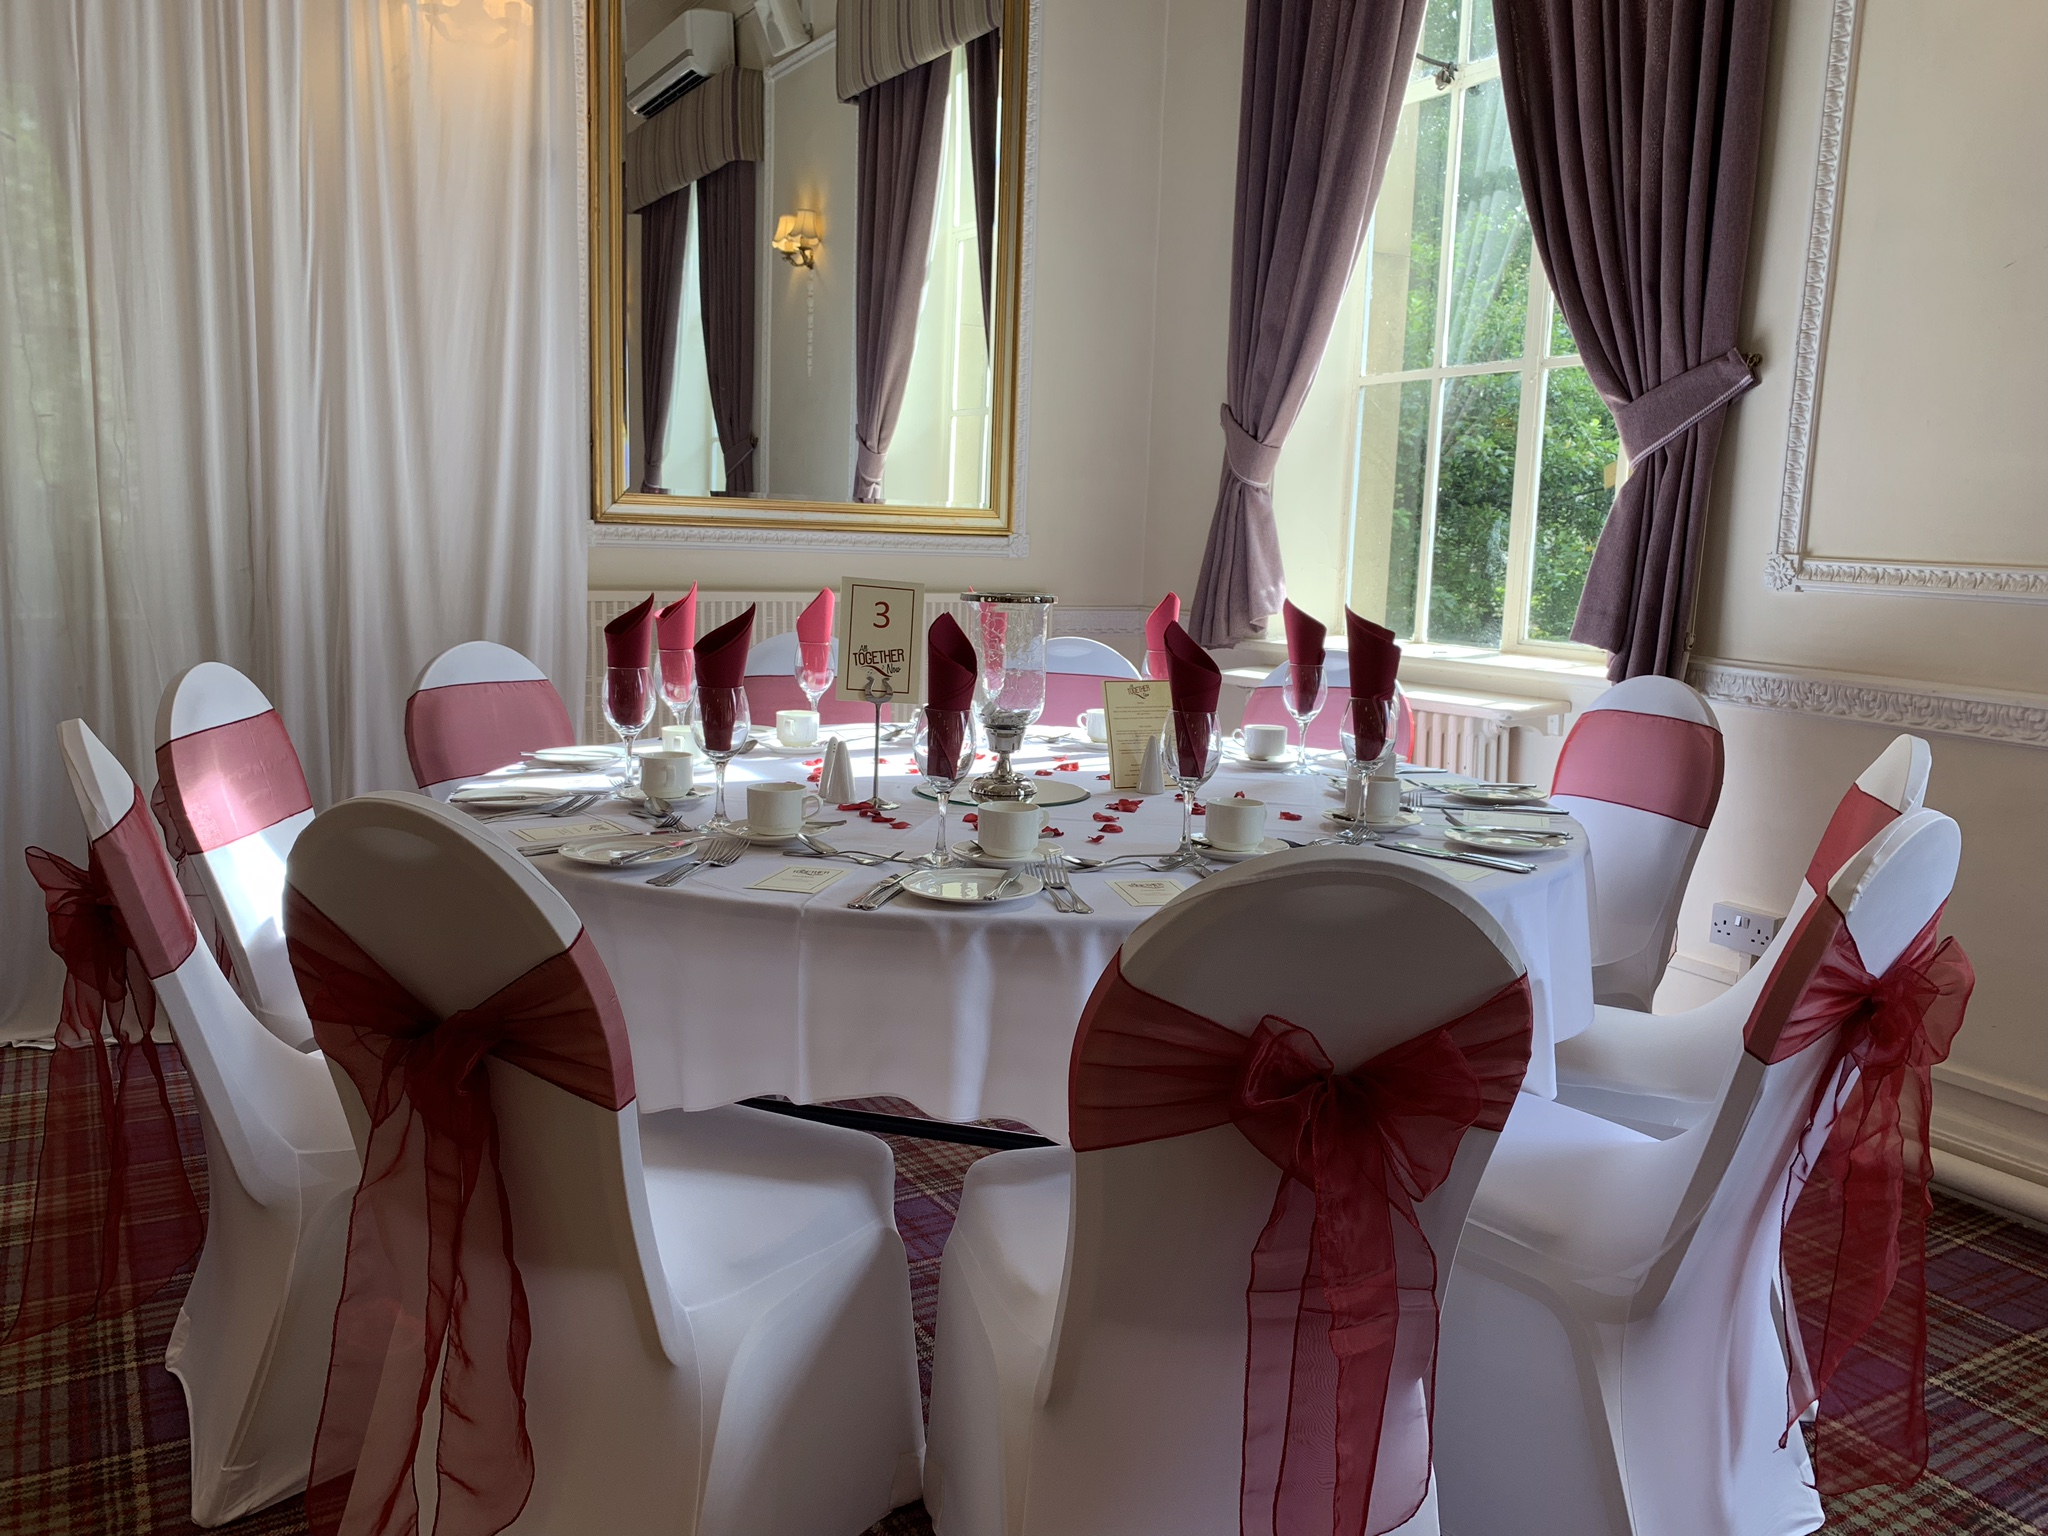 Ball chair decor, white chair covers and burgundy sahses, corporate event